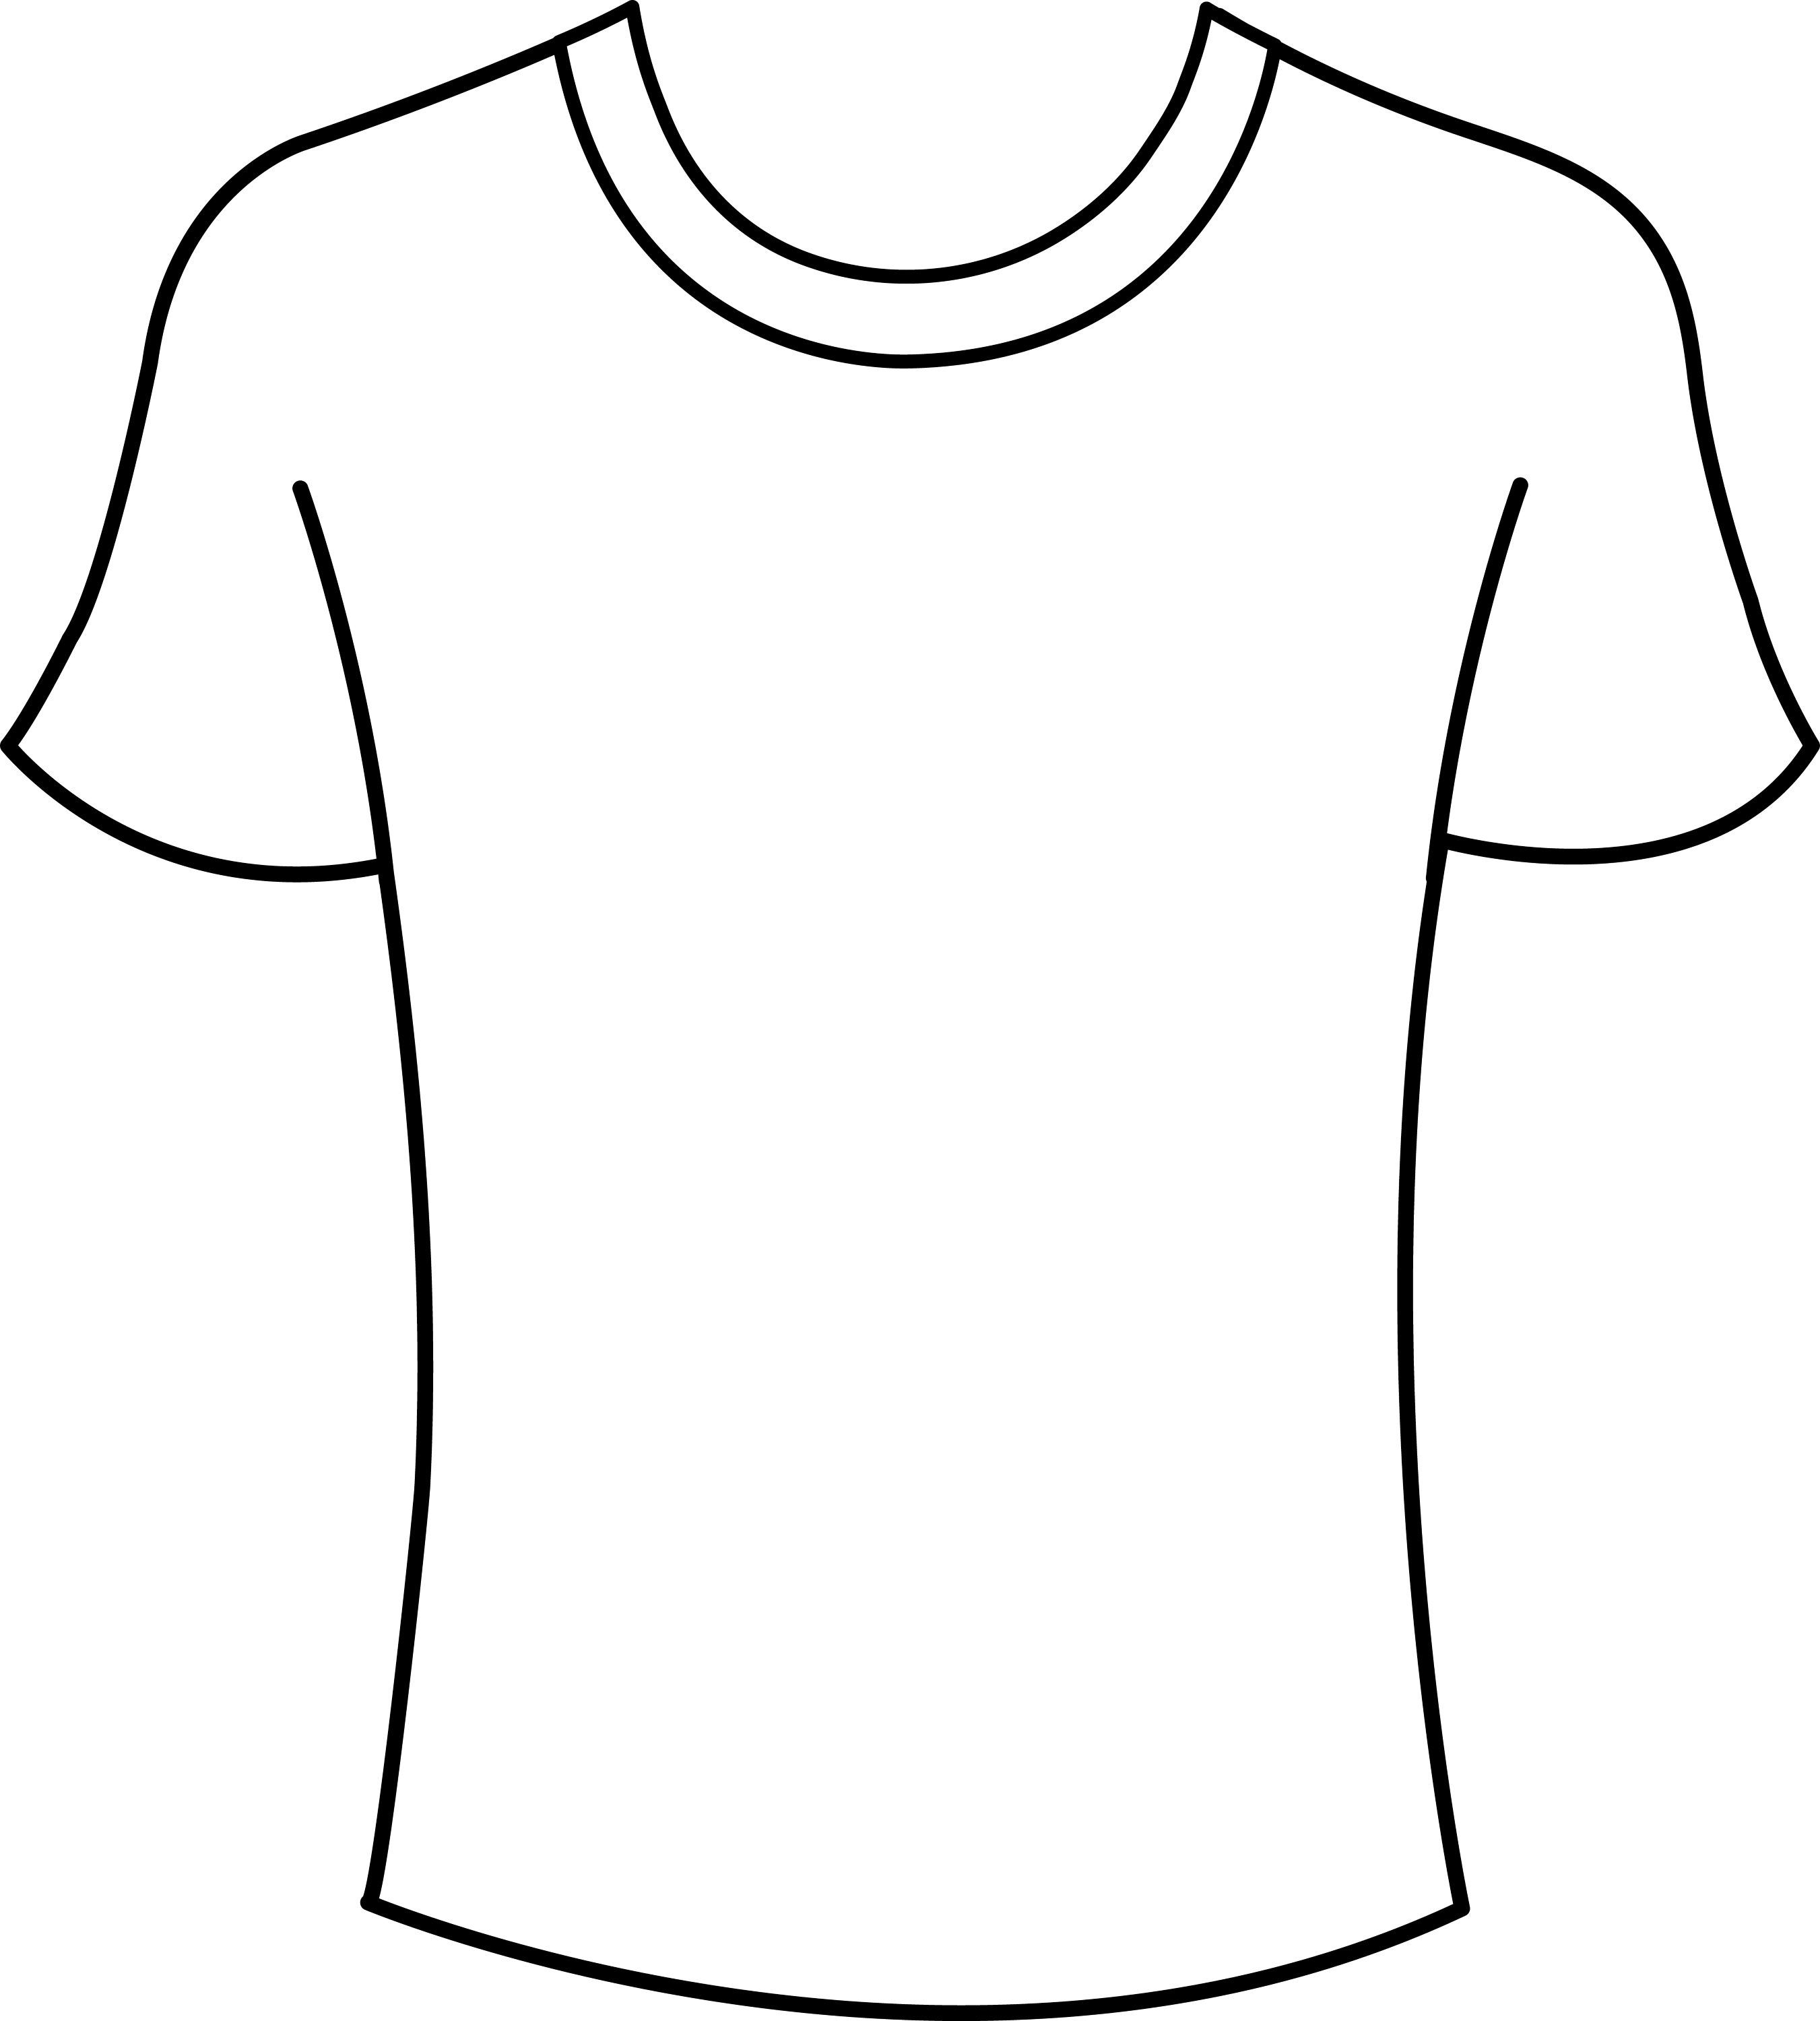 Mens T Shirt Template   Free Clip Art hRosNx93